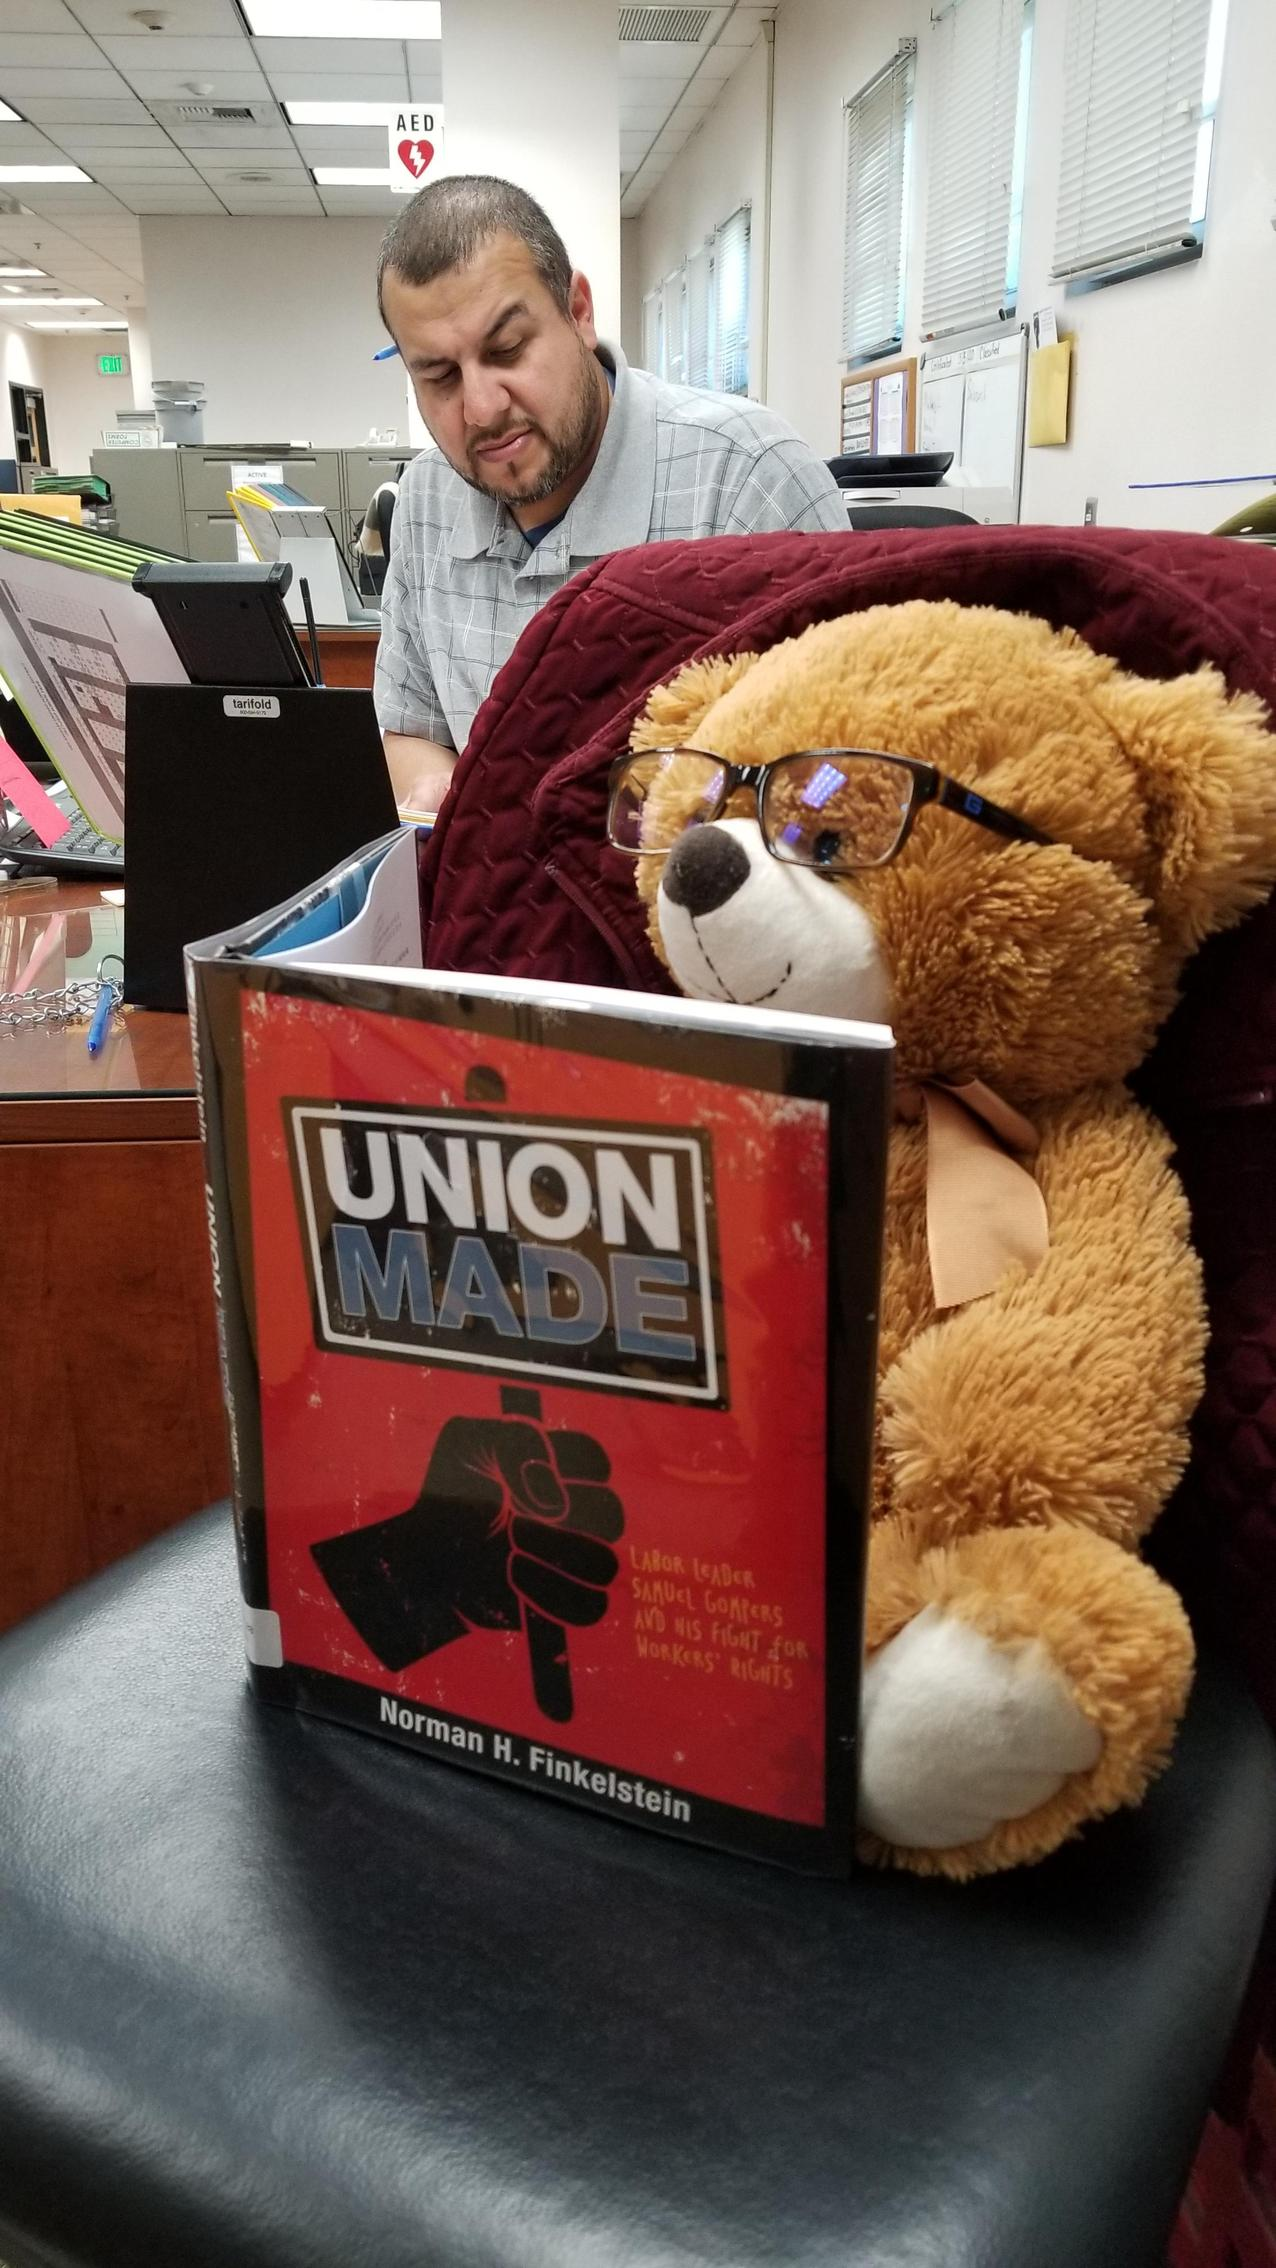 LOOK at what Roger is Reading NOW!  And where is he???